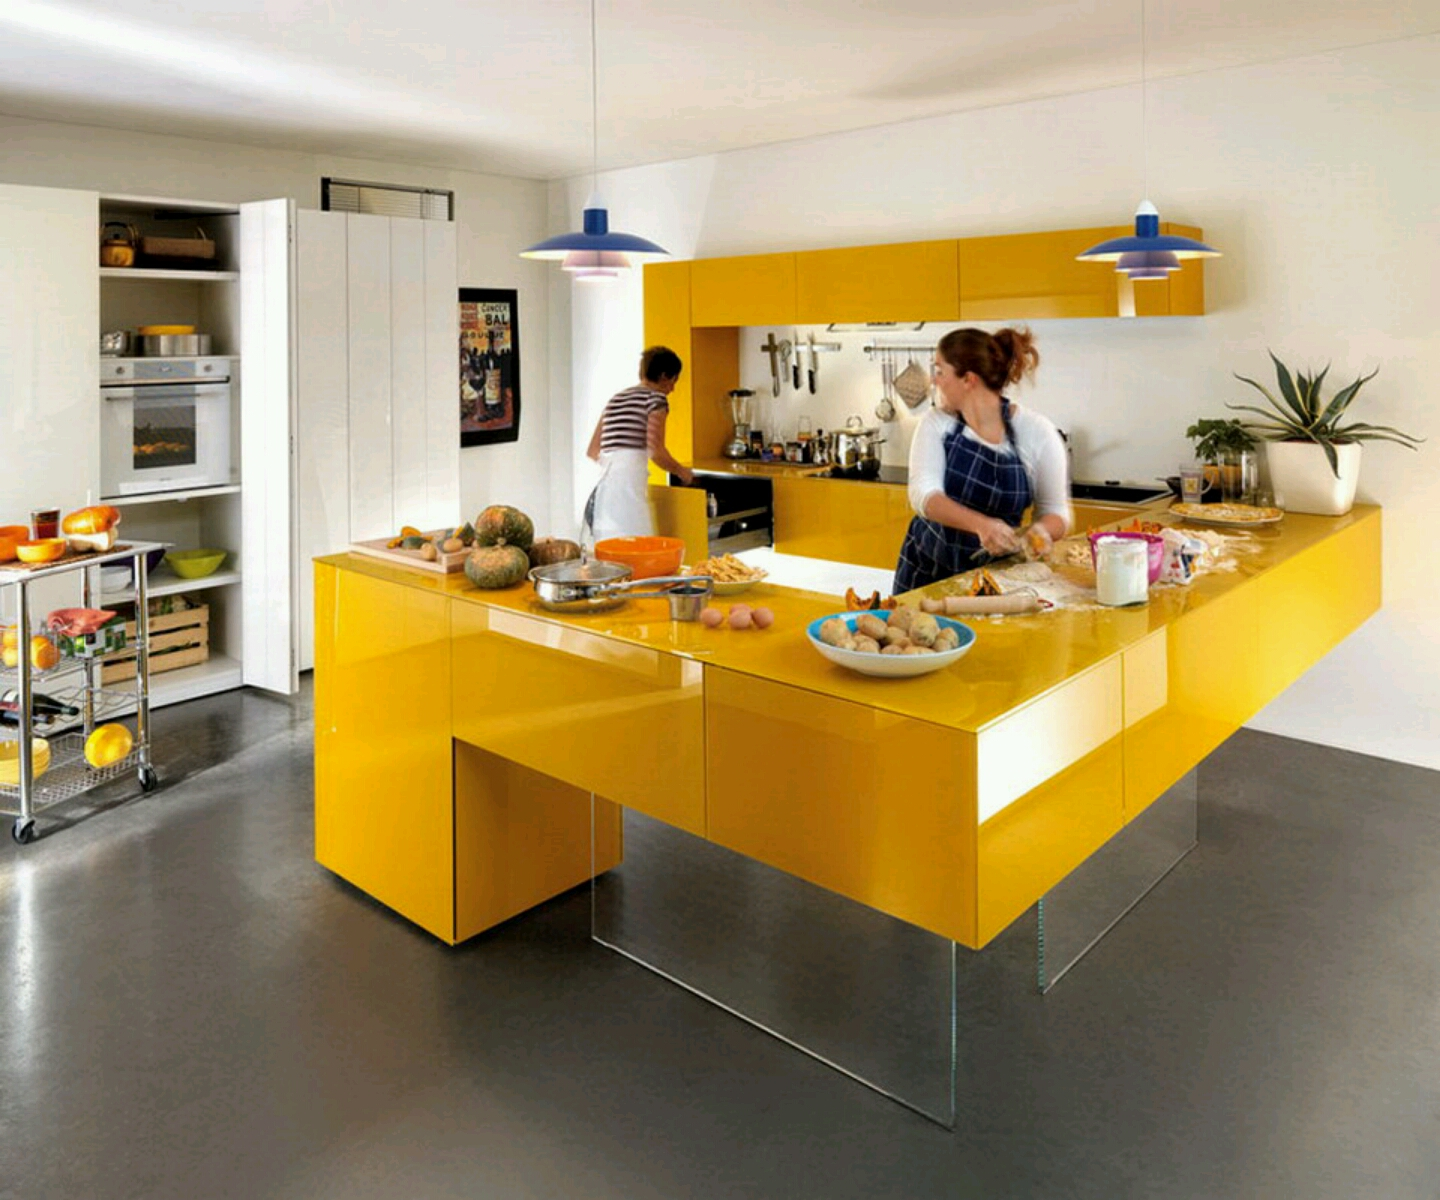 Modern kitchen cabinets designs ideas furniture gallery for New kitchen designs 2012